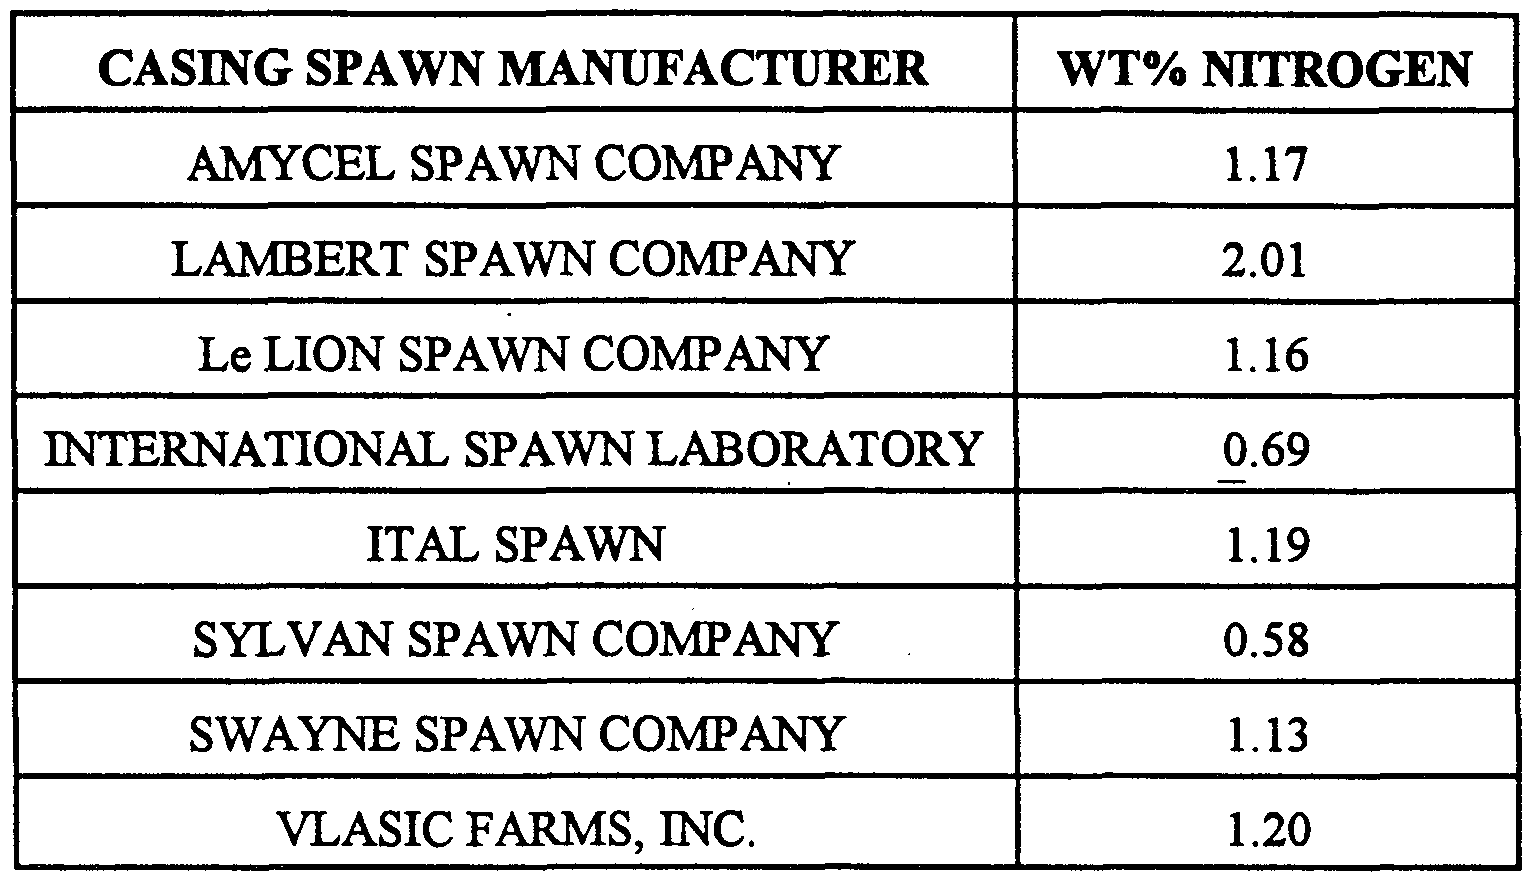 WO2000008916A1 - Mushroom casing spawn - Google Patents